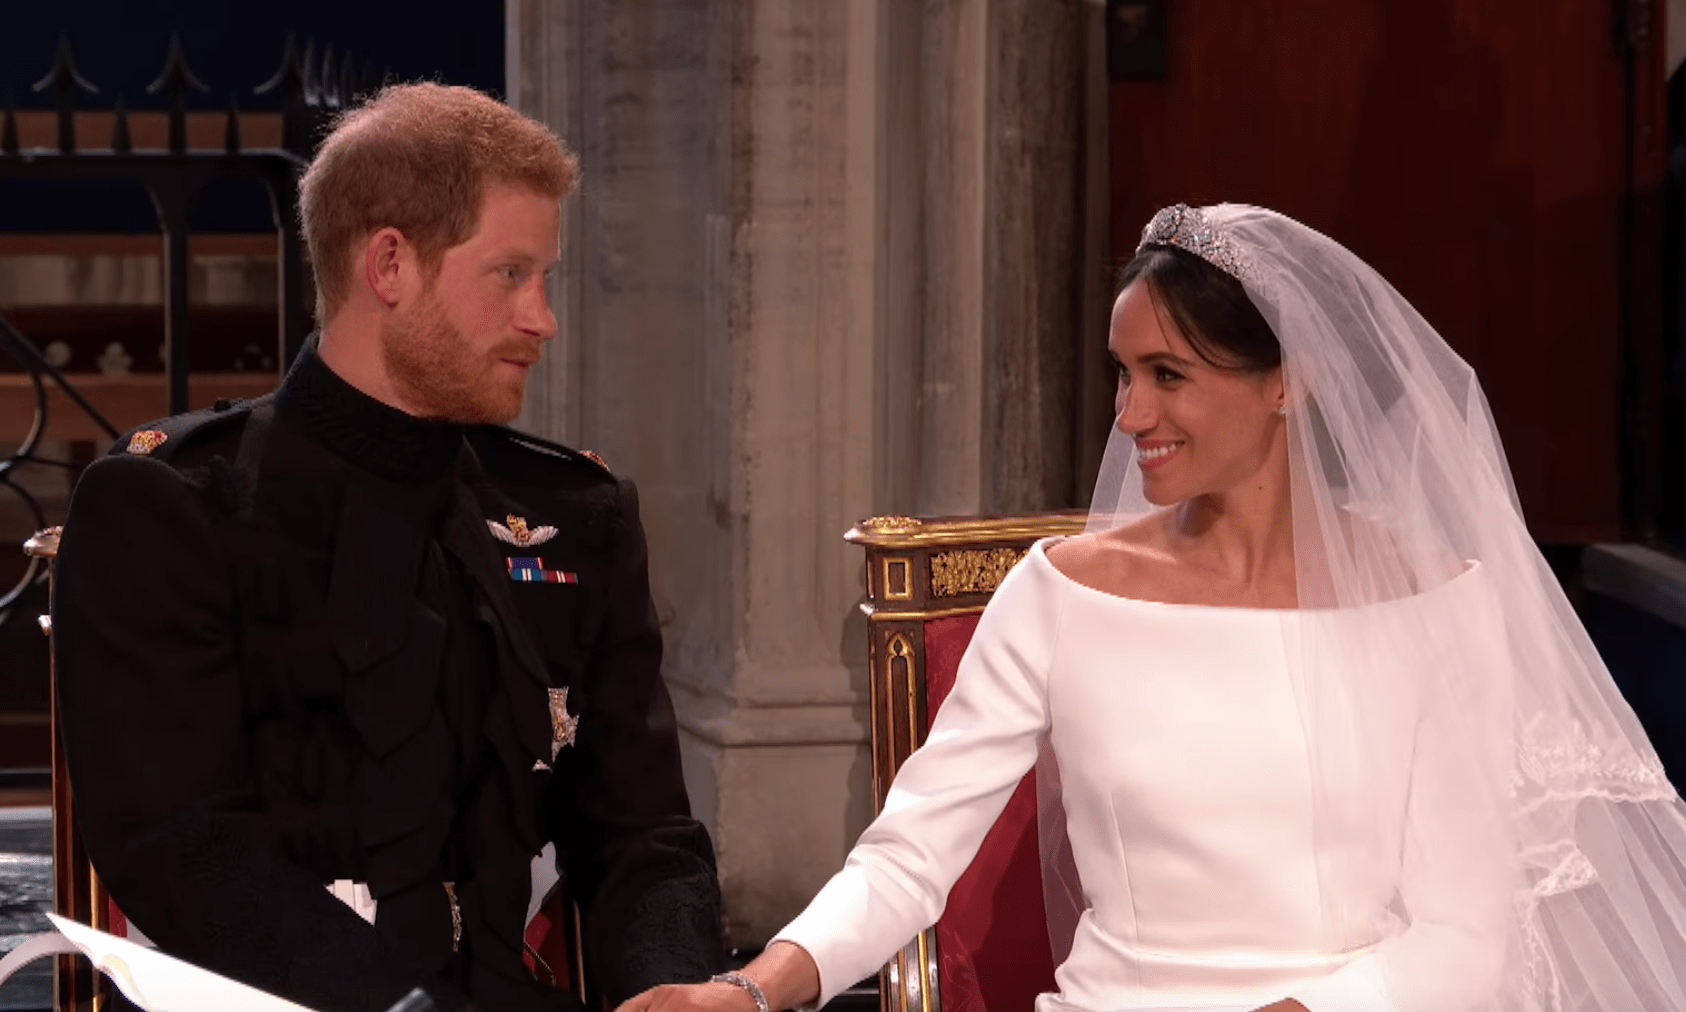 The story behind Meghan and Harry's Royal Wedding portrait on the steps